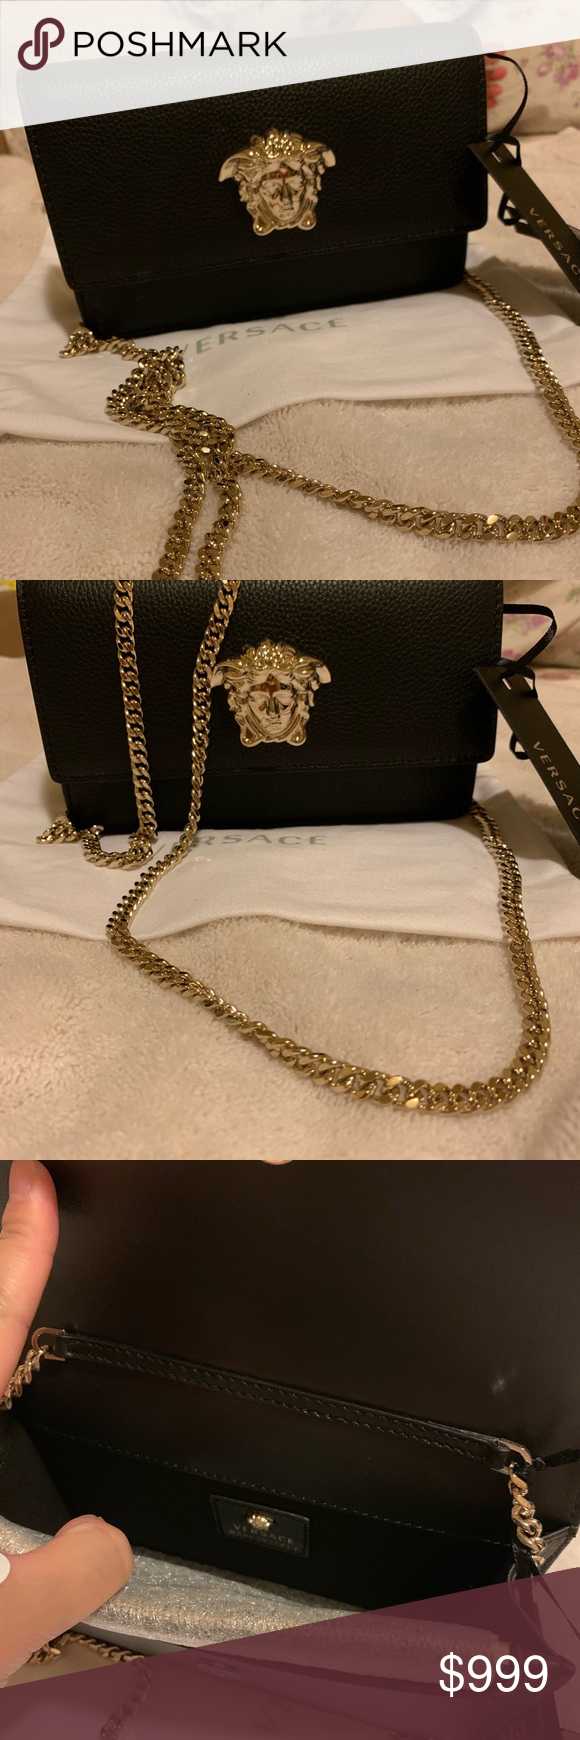 898332a9eb2 Versace shoulder bag Very beautiful bagMedusa Head plaque Chain strap  Foldover closure Inner pockets 100% Leather 100% Polyester (Lining) Length   19 cm ...